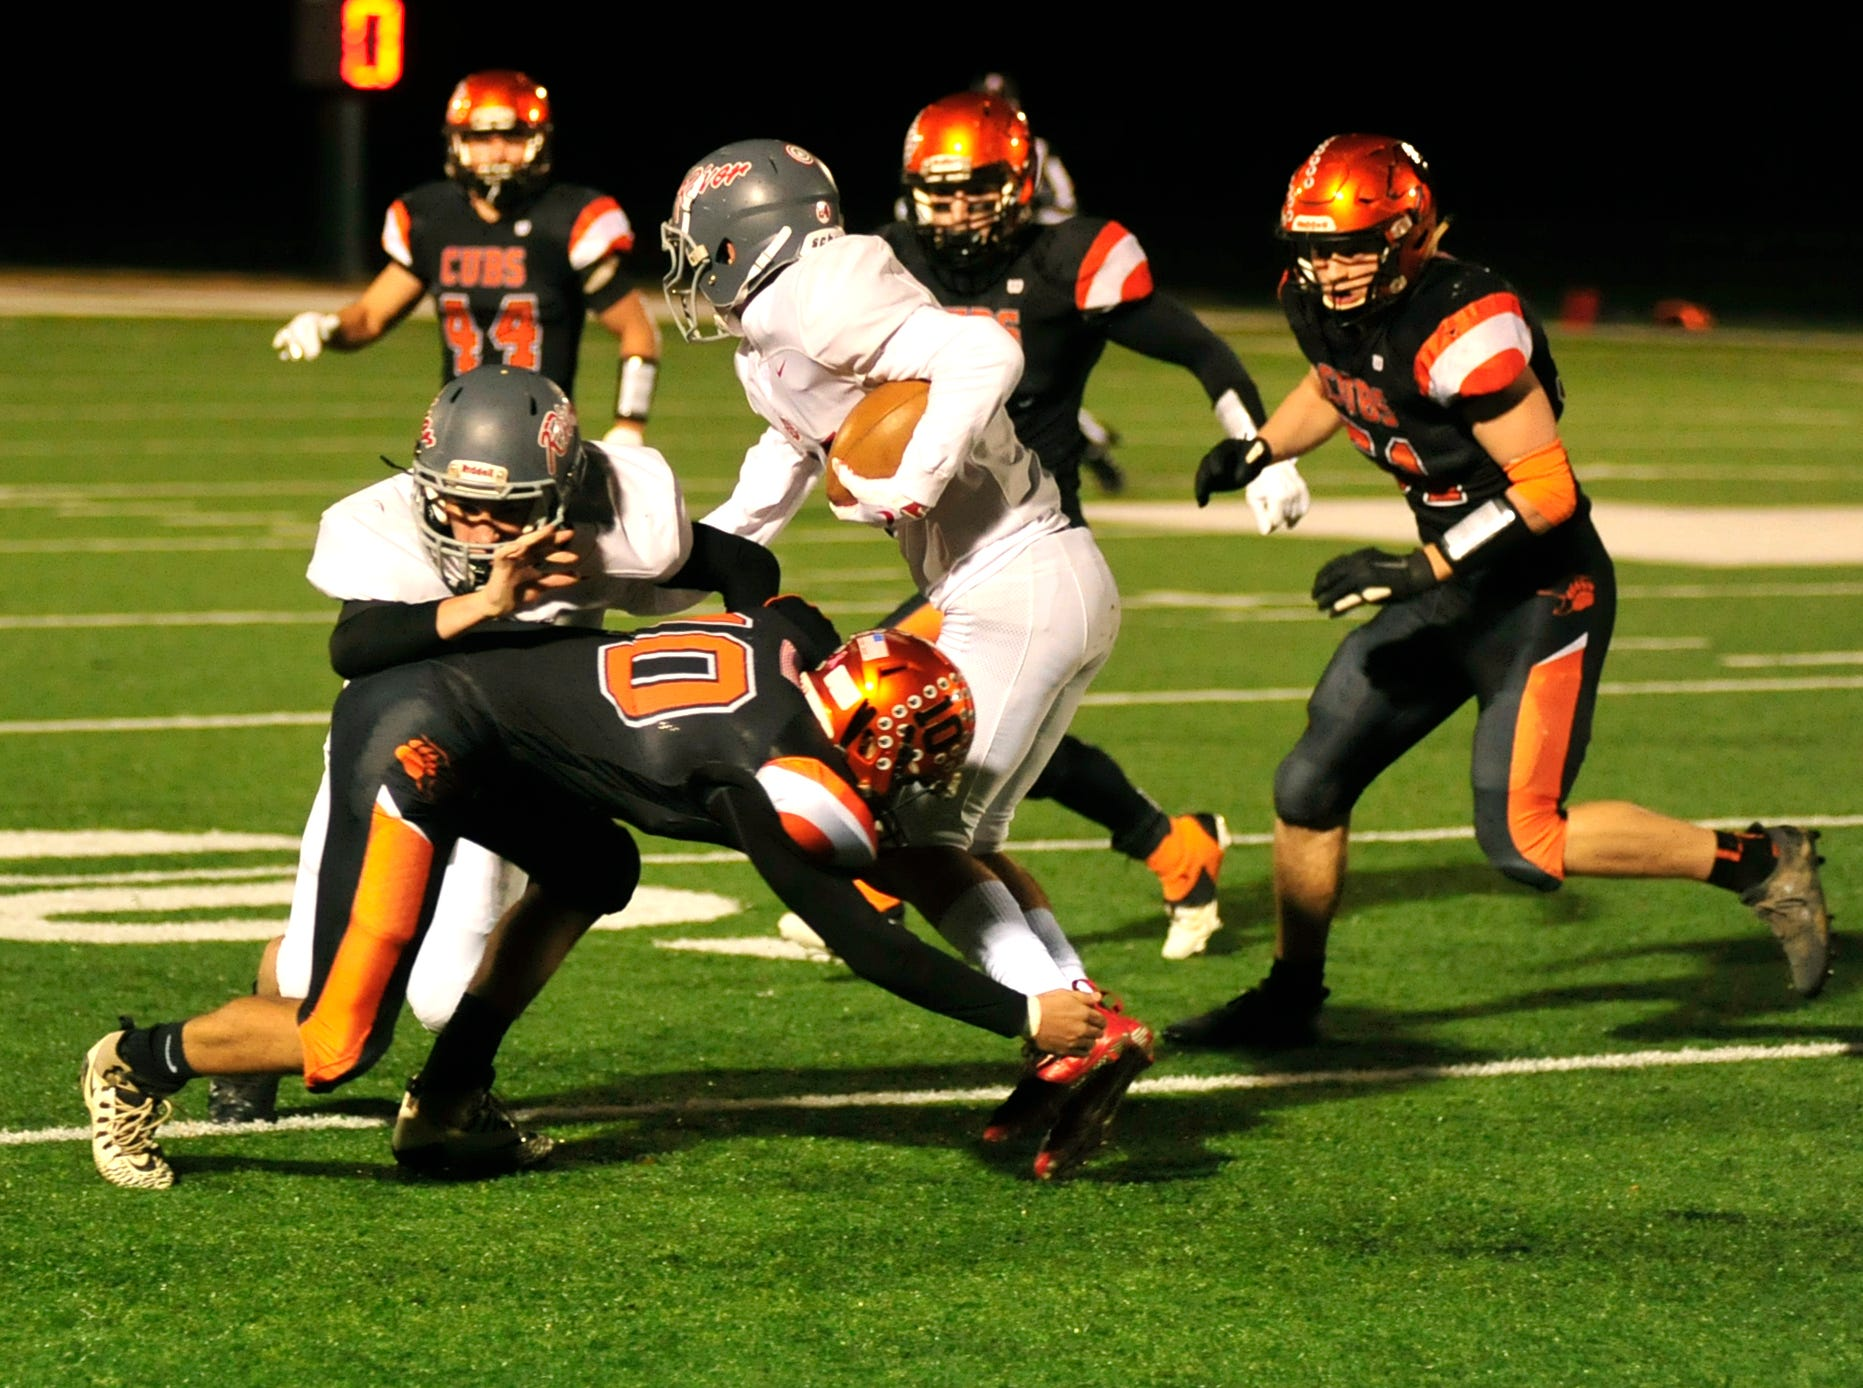 Lucas' Ethan Sauder tackles a player while playing against River while playing at Madison on Saturday night.